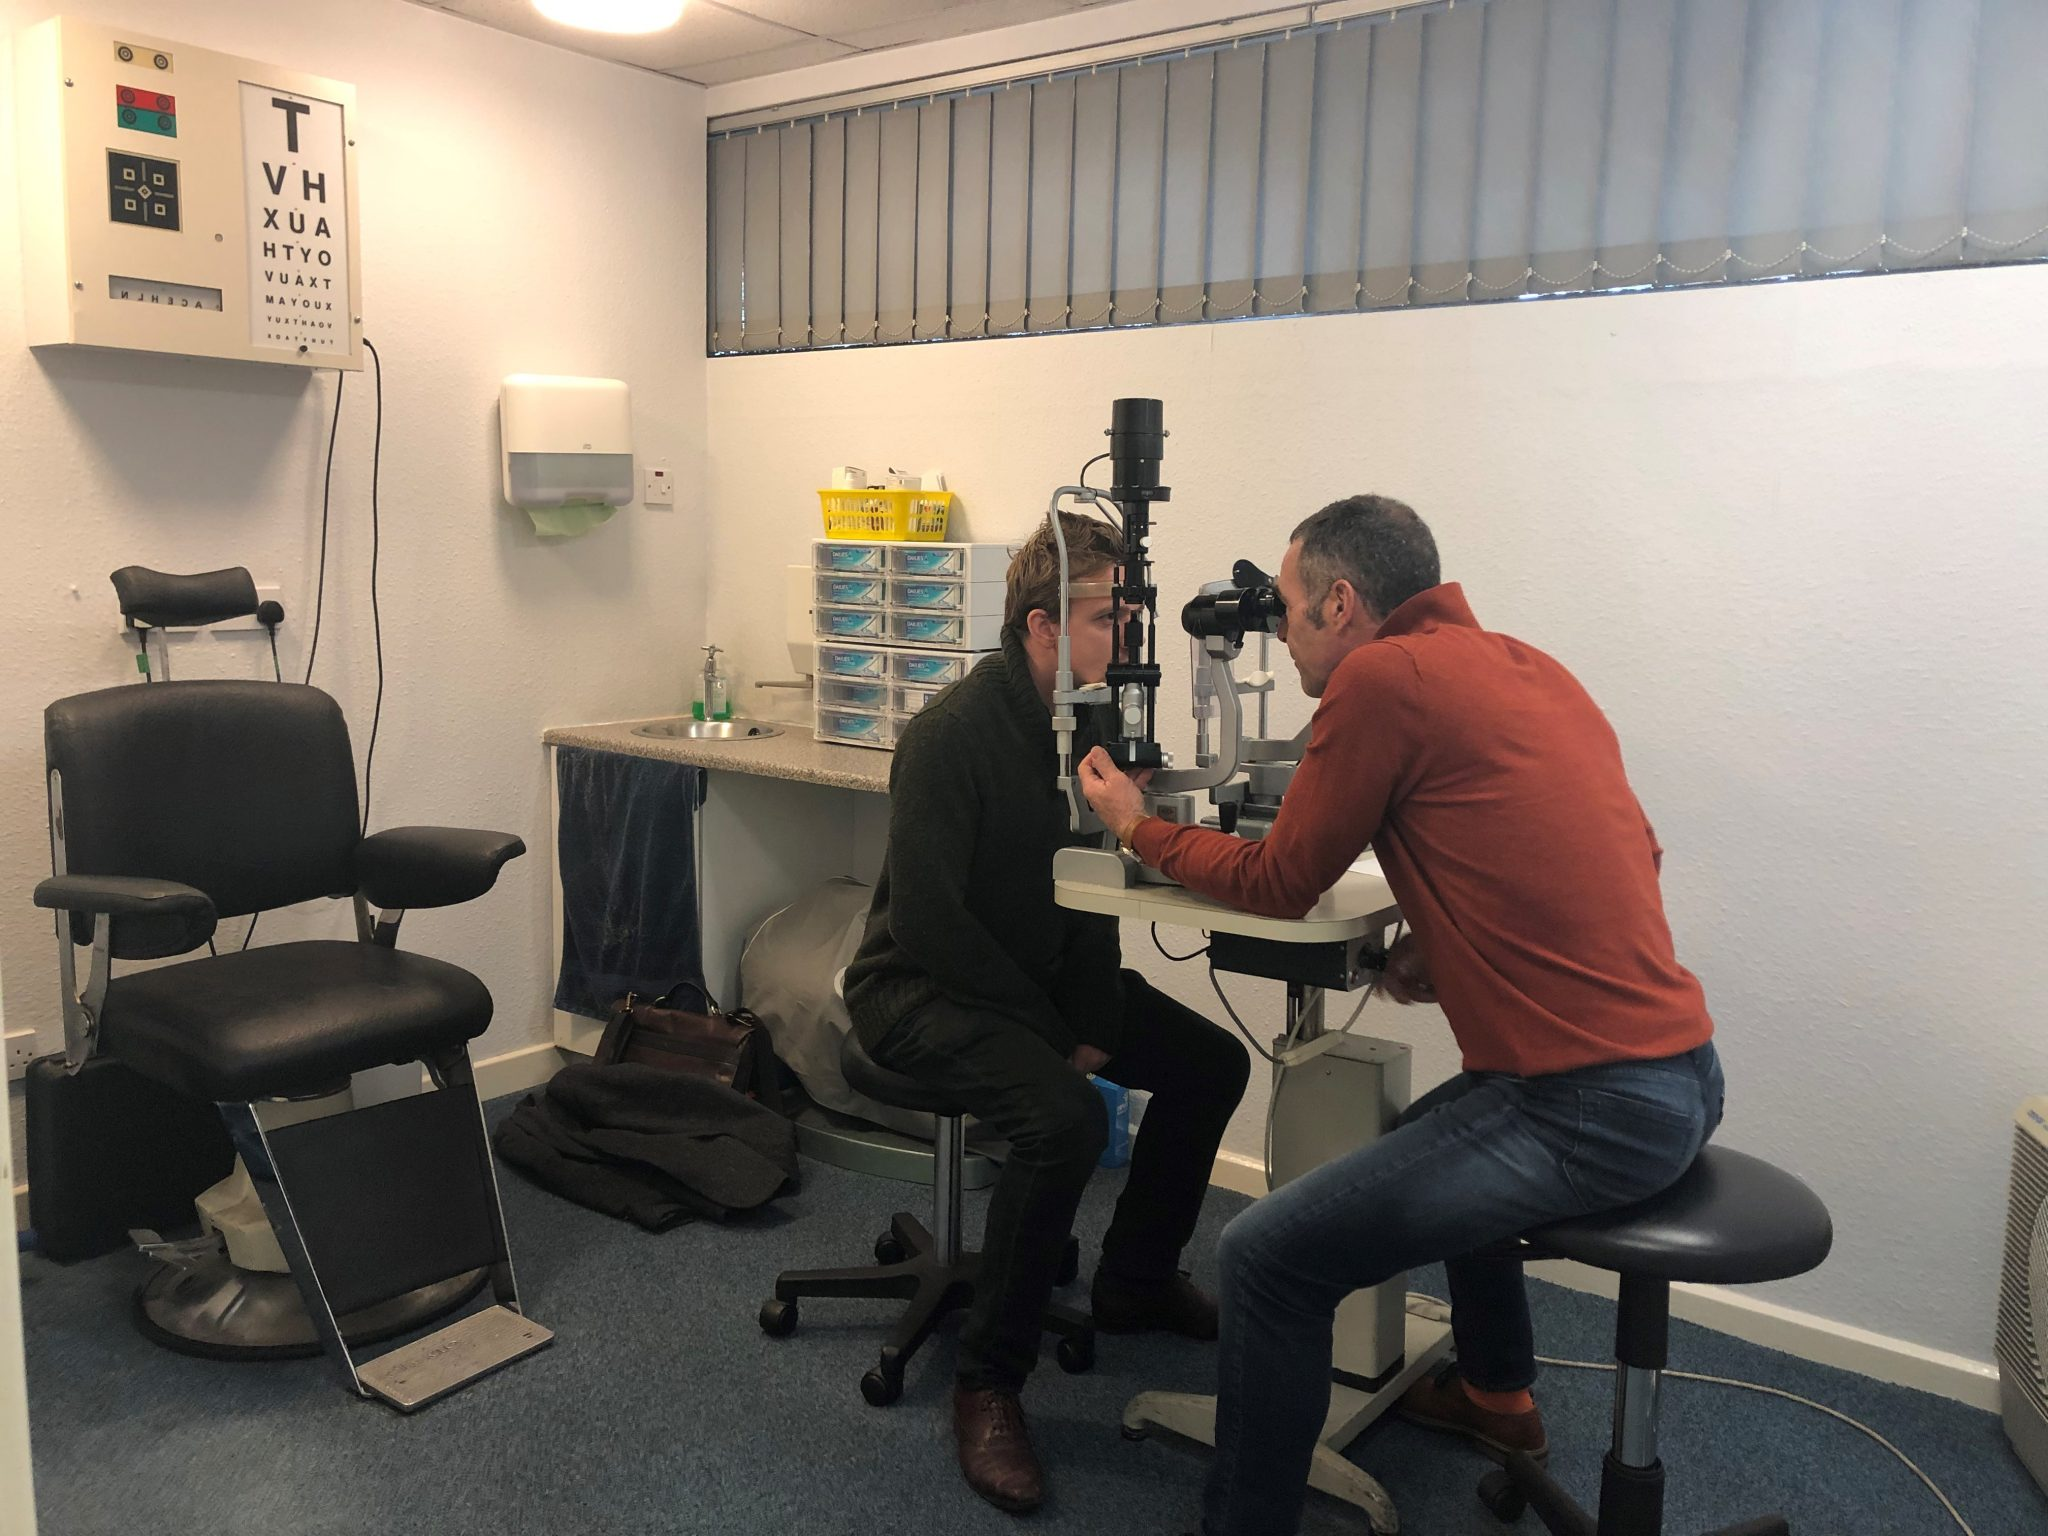 Optician Chris Checking Patients eye during a contact lense fitting in Barnsely